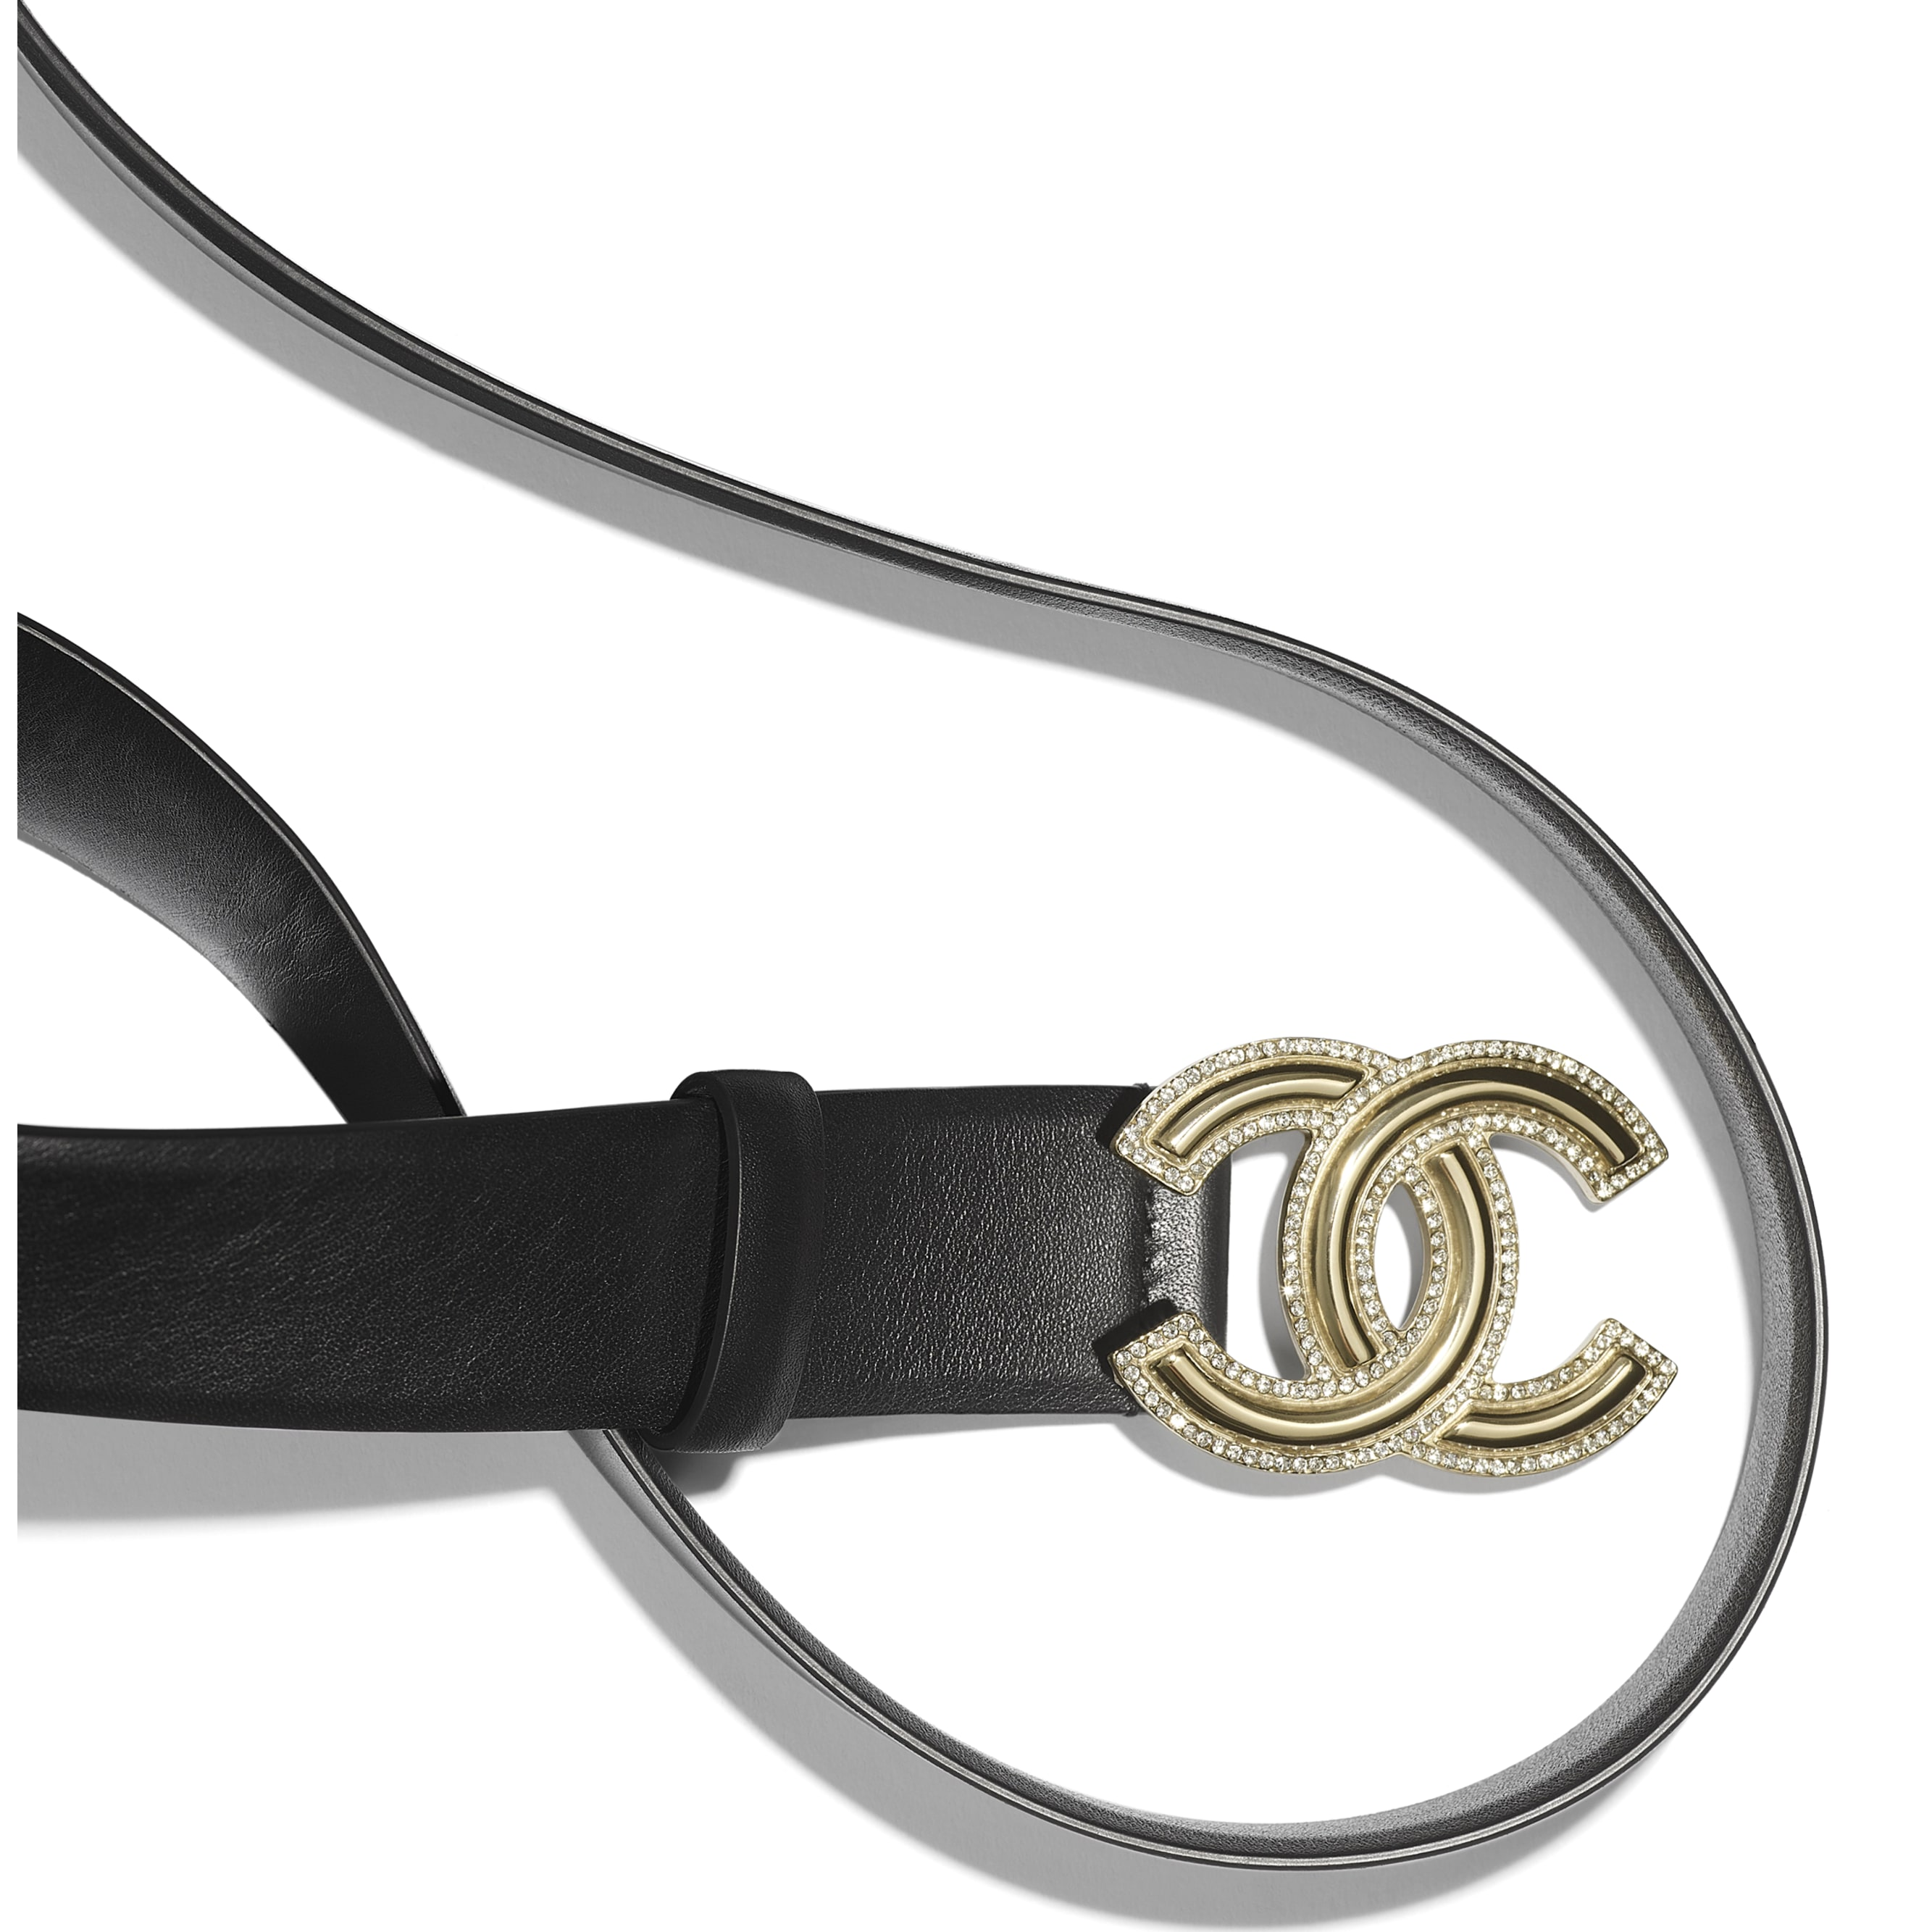 Belt - Black - Calfskin, Gold-Tone Metal & Diamanté - CHANEL - Alternative view - see standard sized version